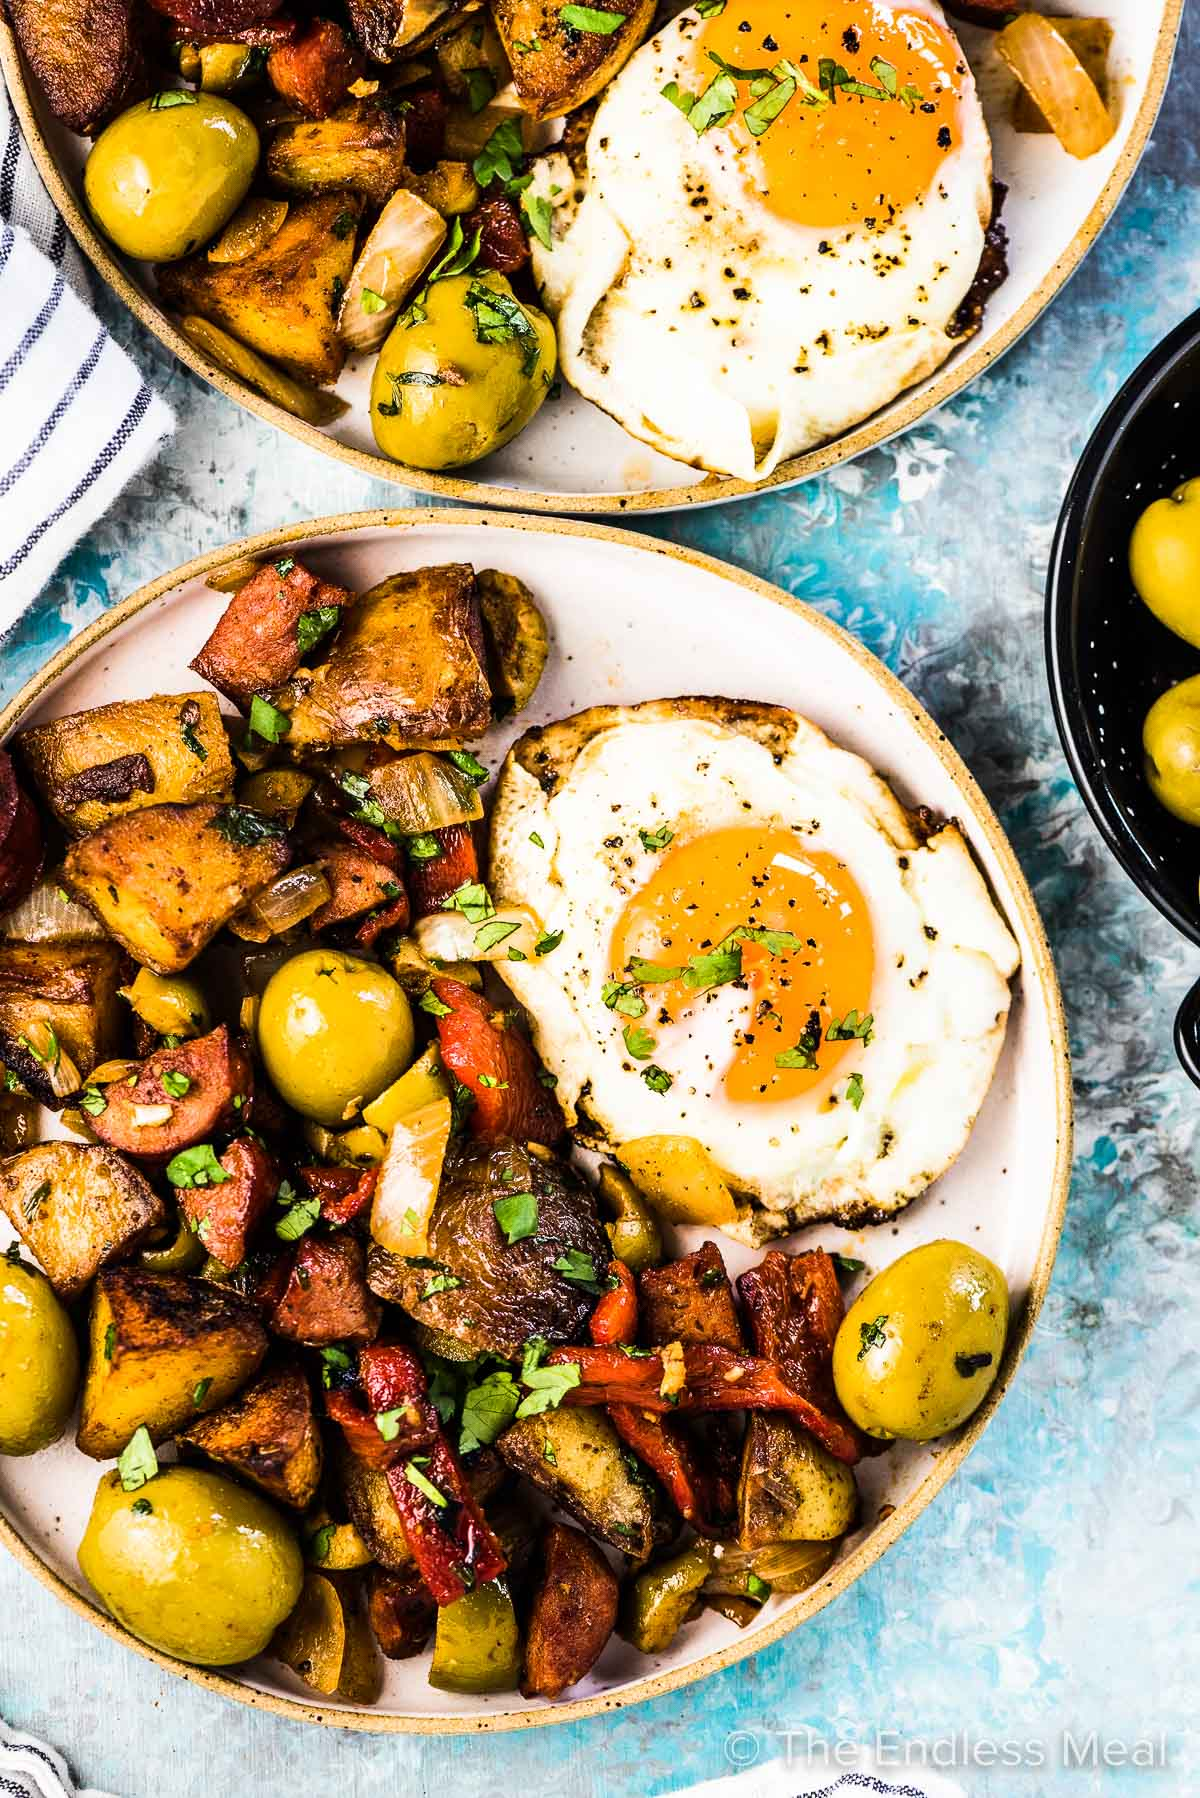 Two plates filled with Spanish breakfast potatoes and a fried egg.